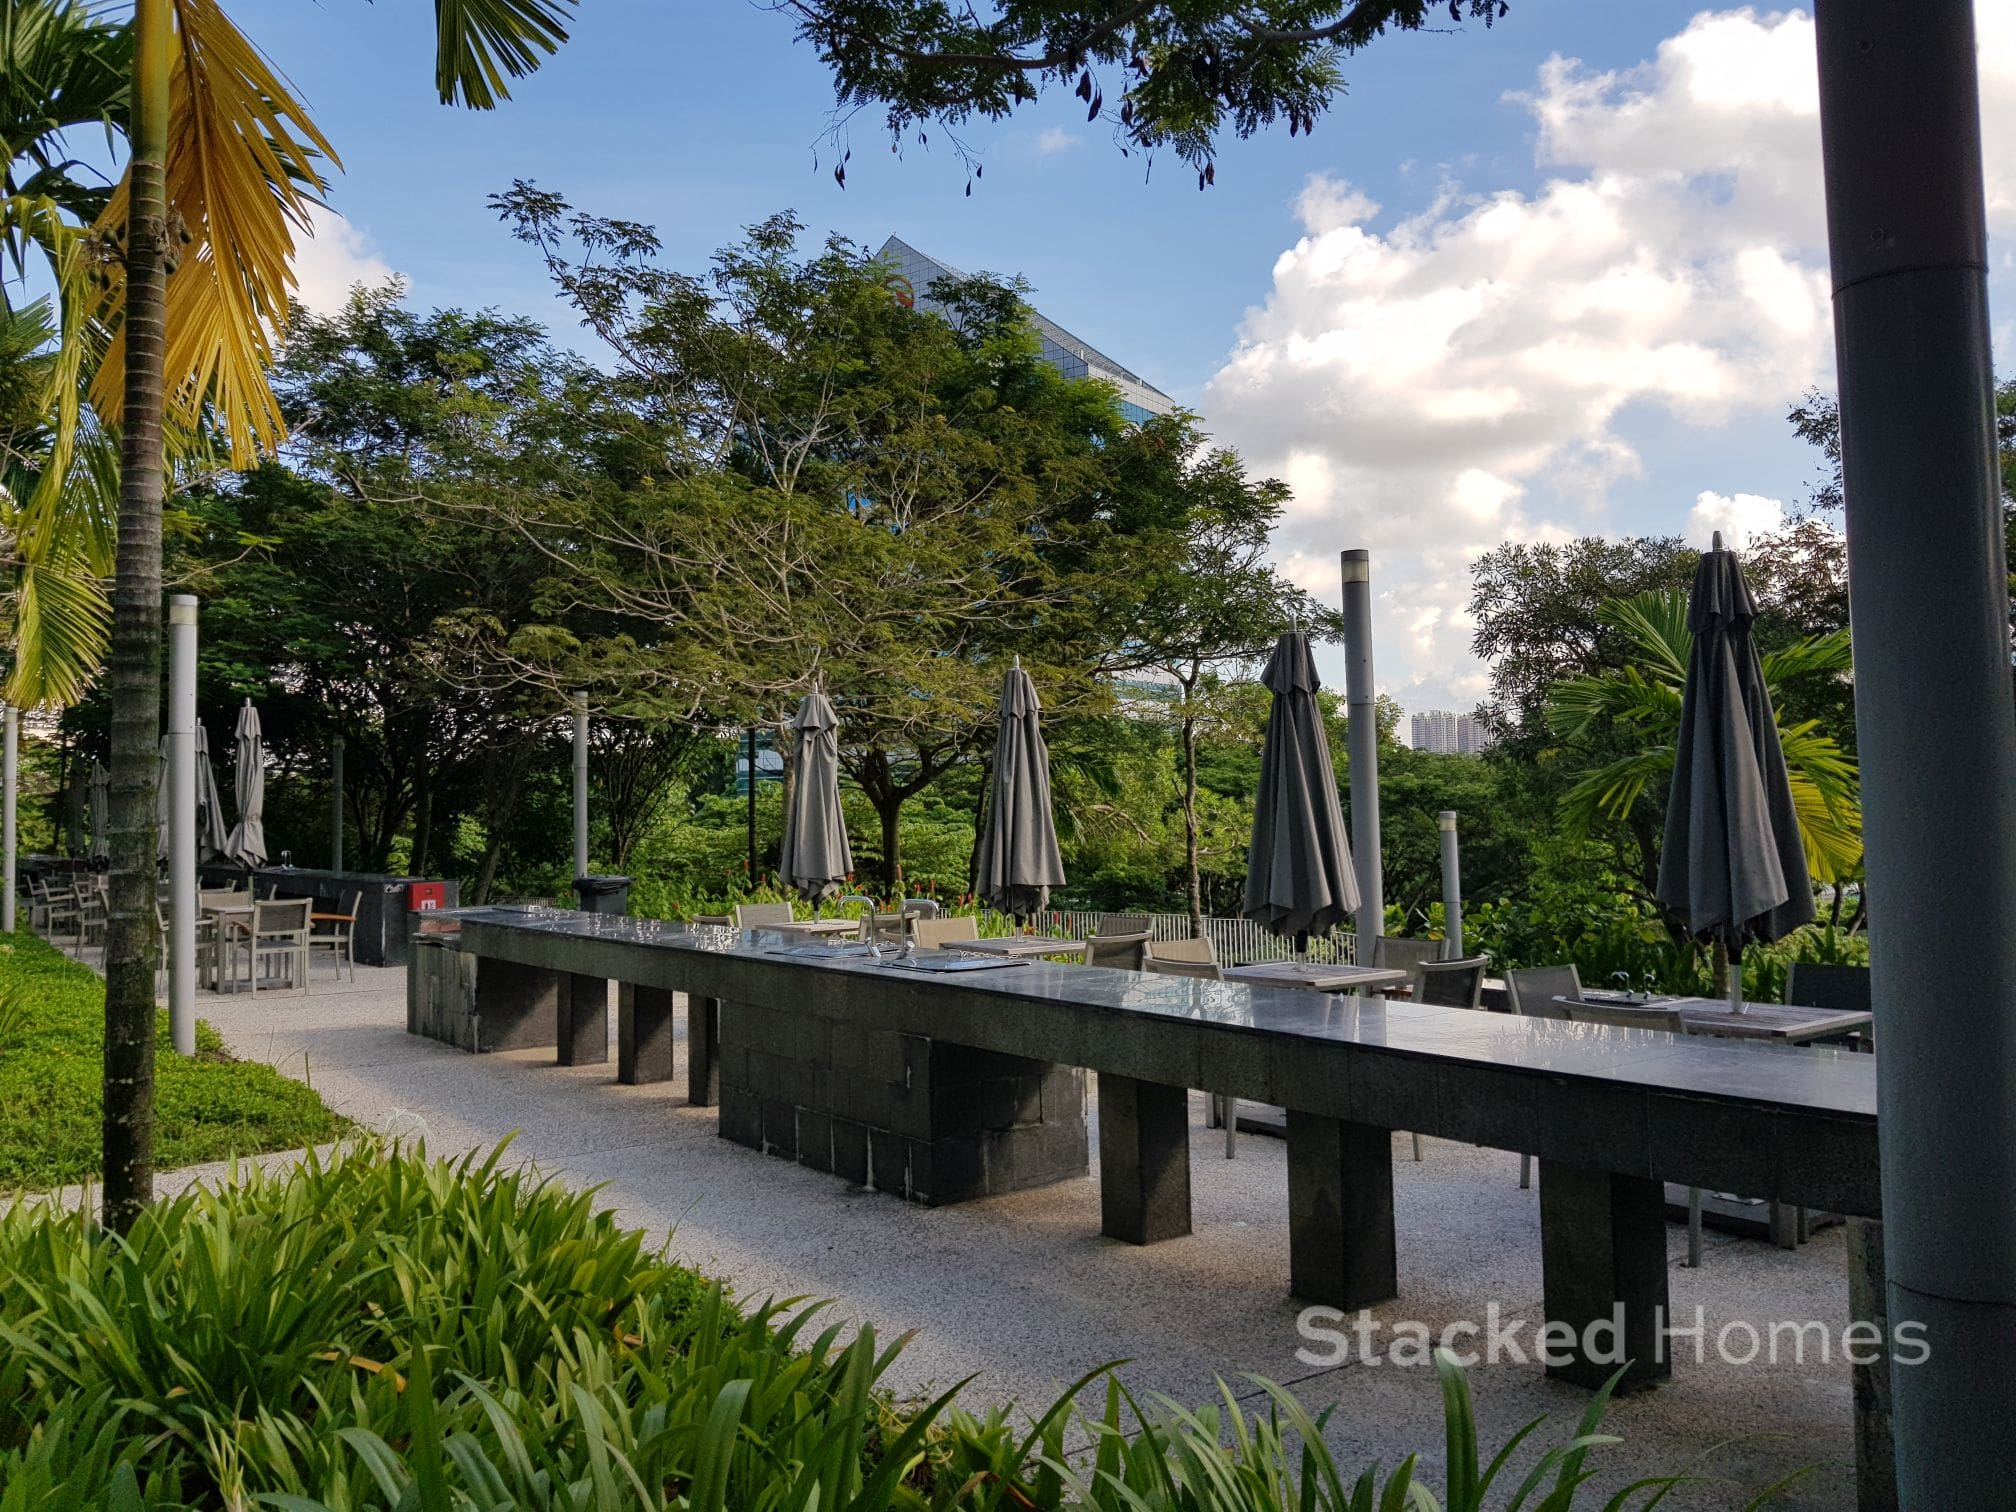 the interlace barbeque area